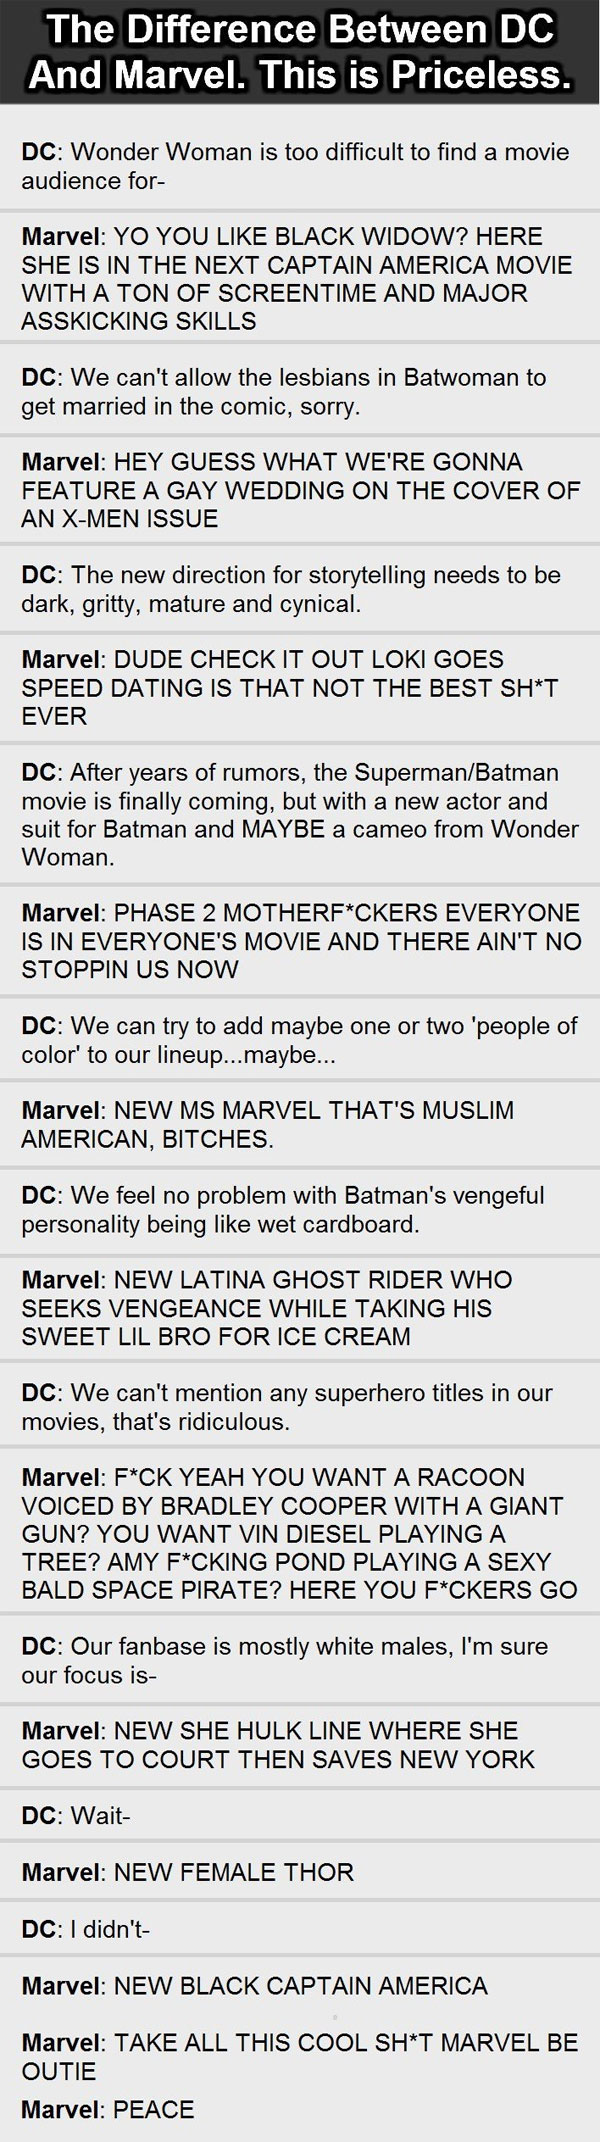 The Difference Between DC and Marvel.jpg